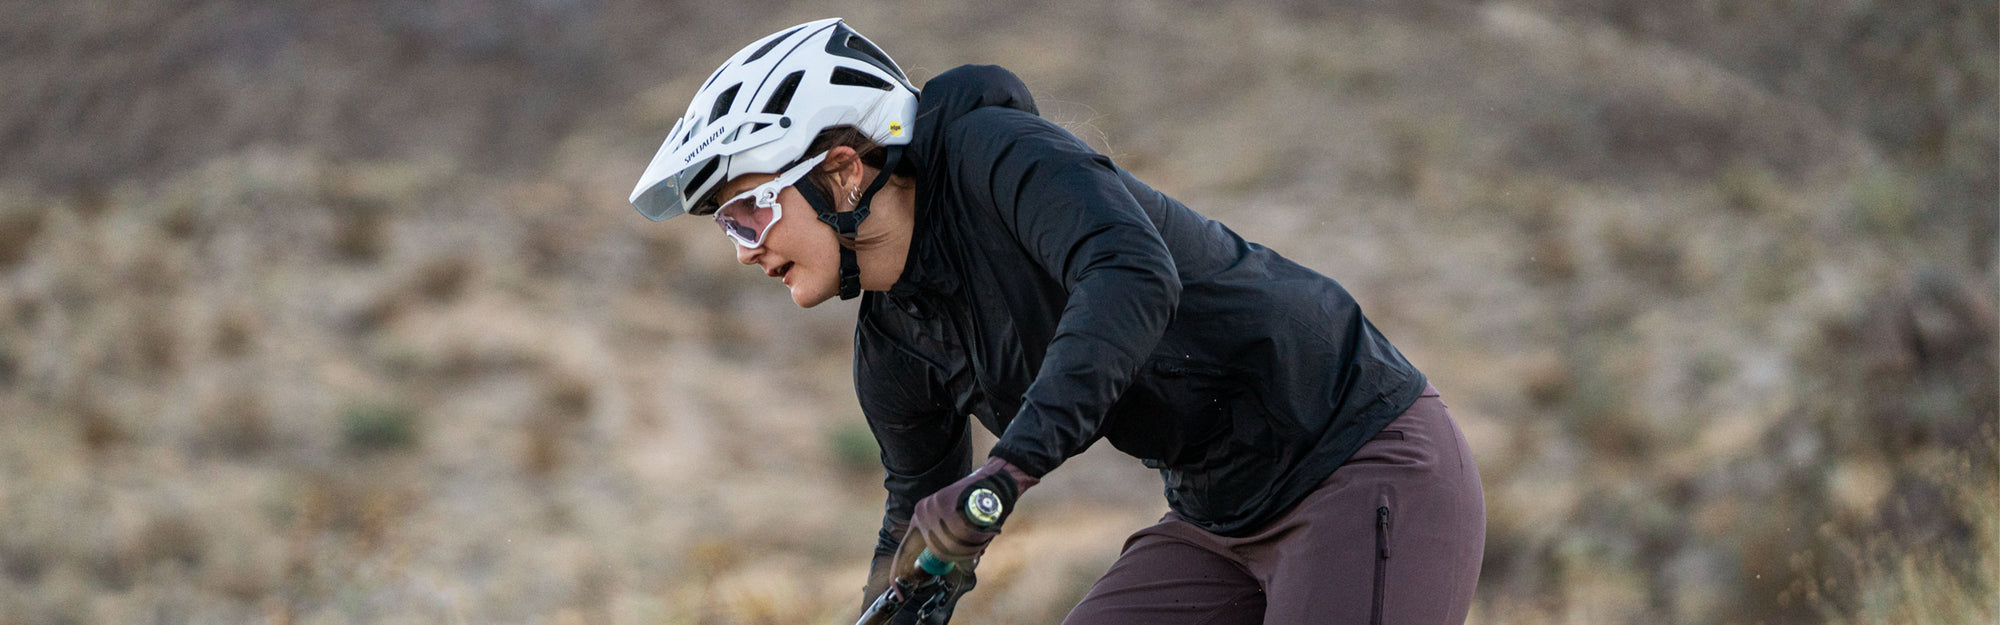 Women's Cycling Jackets & Vests